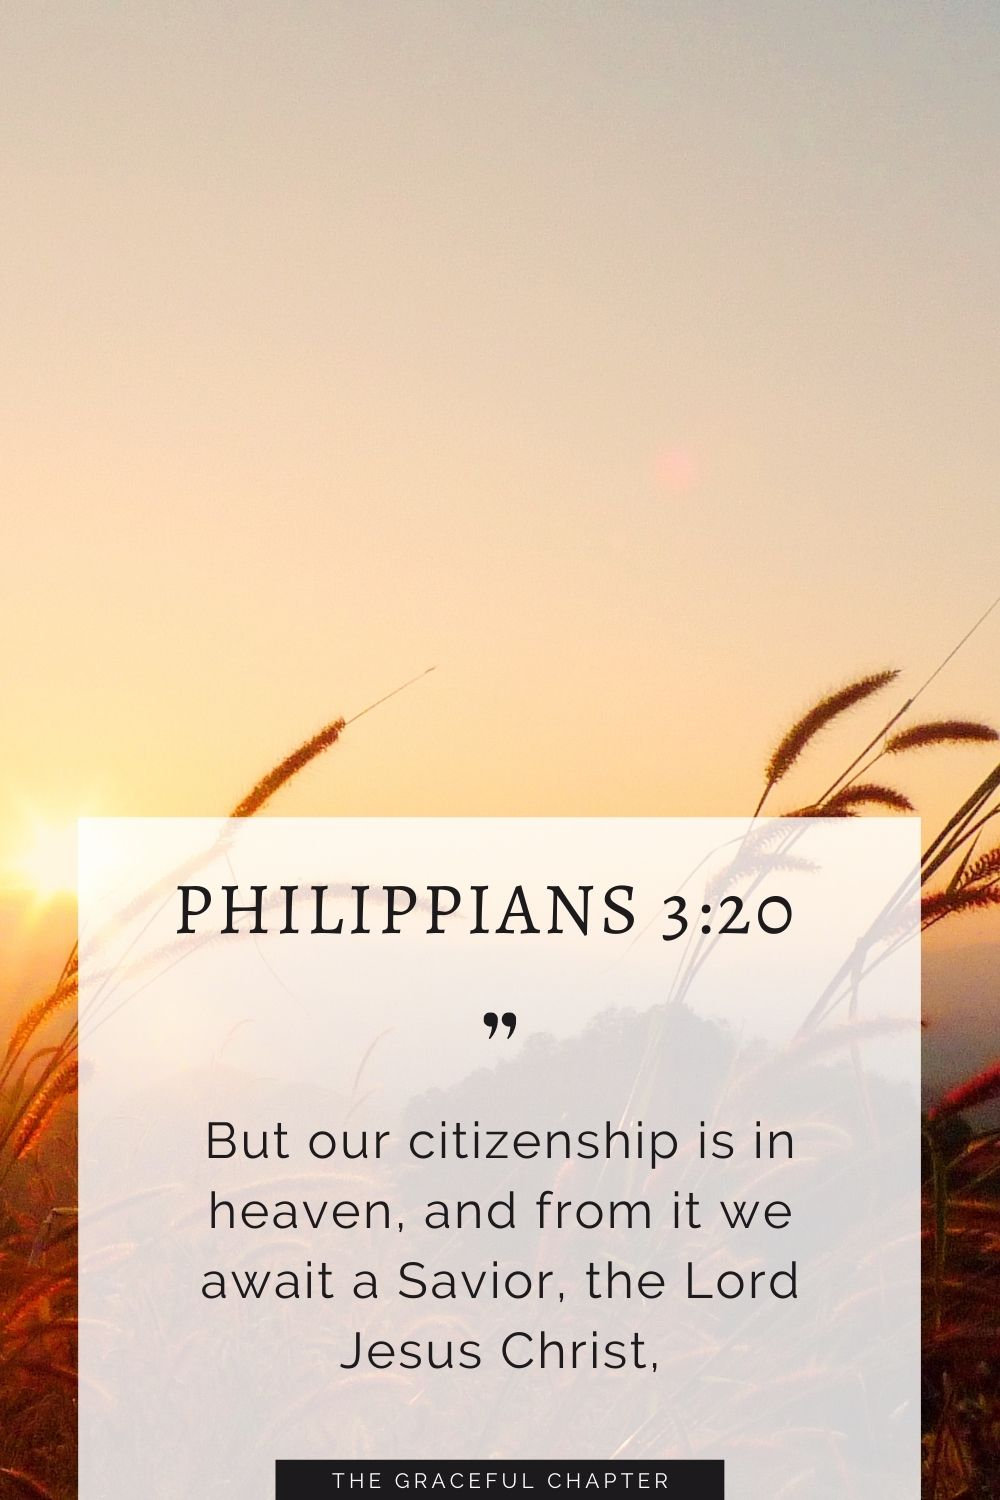 But our citizenship is in heaven, and from it we await a Savior, the Lord Jesus Christ, Philippians 3:20